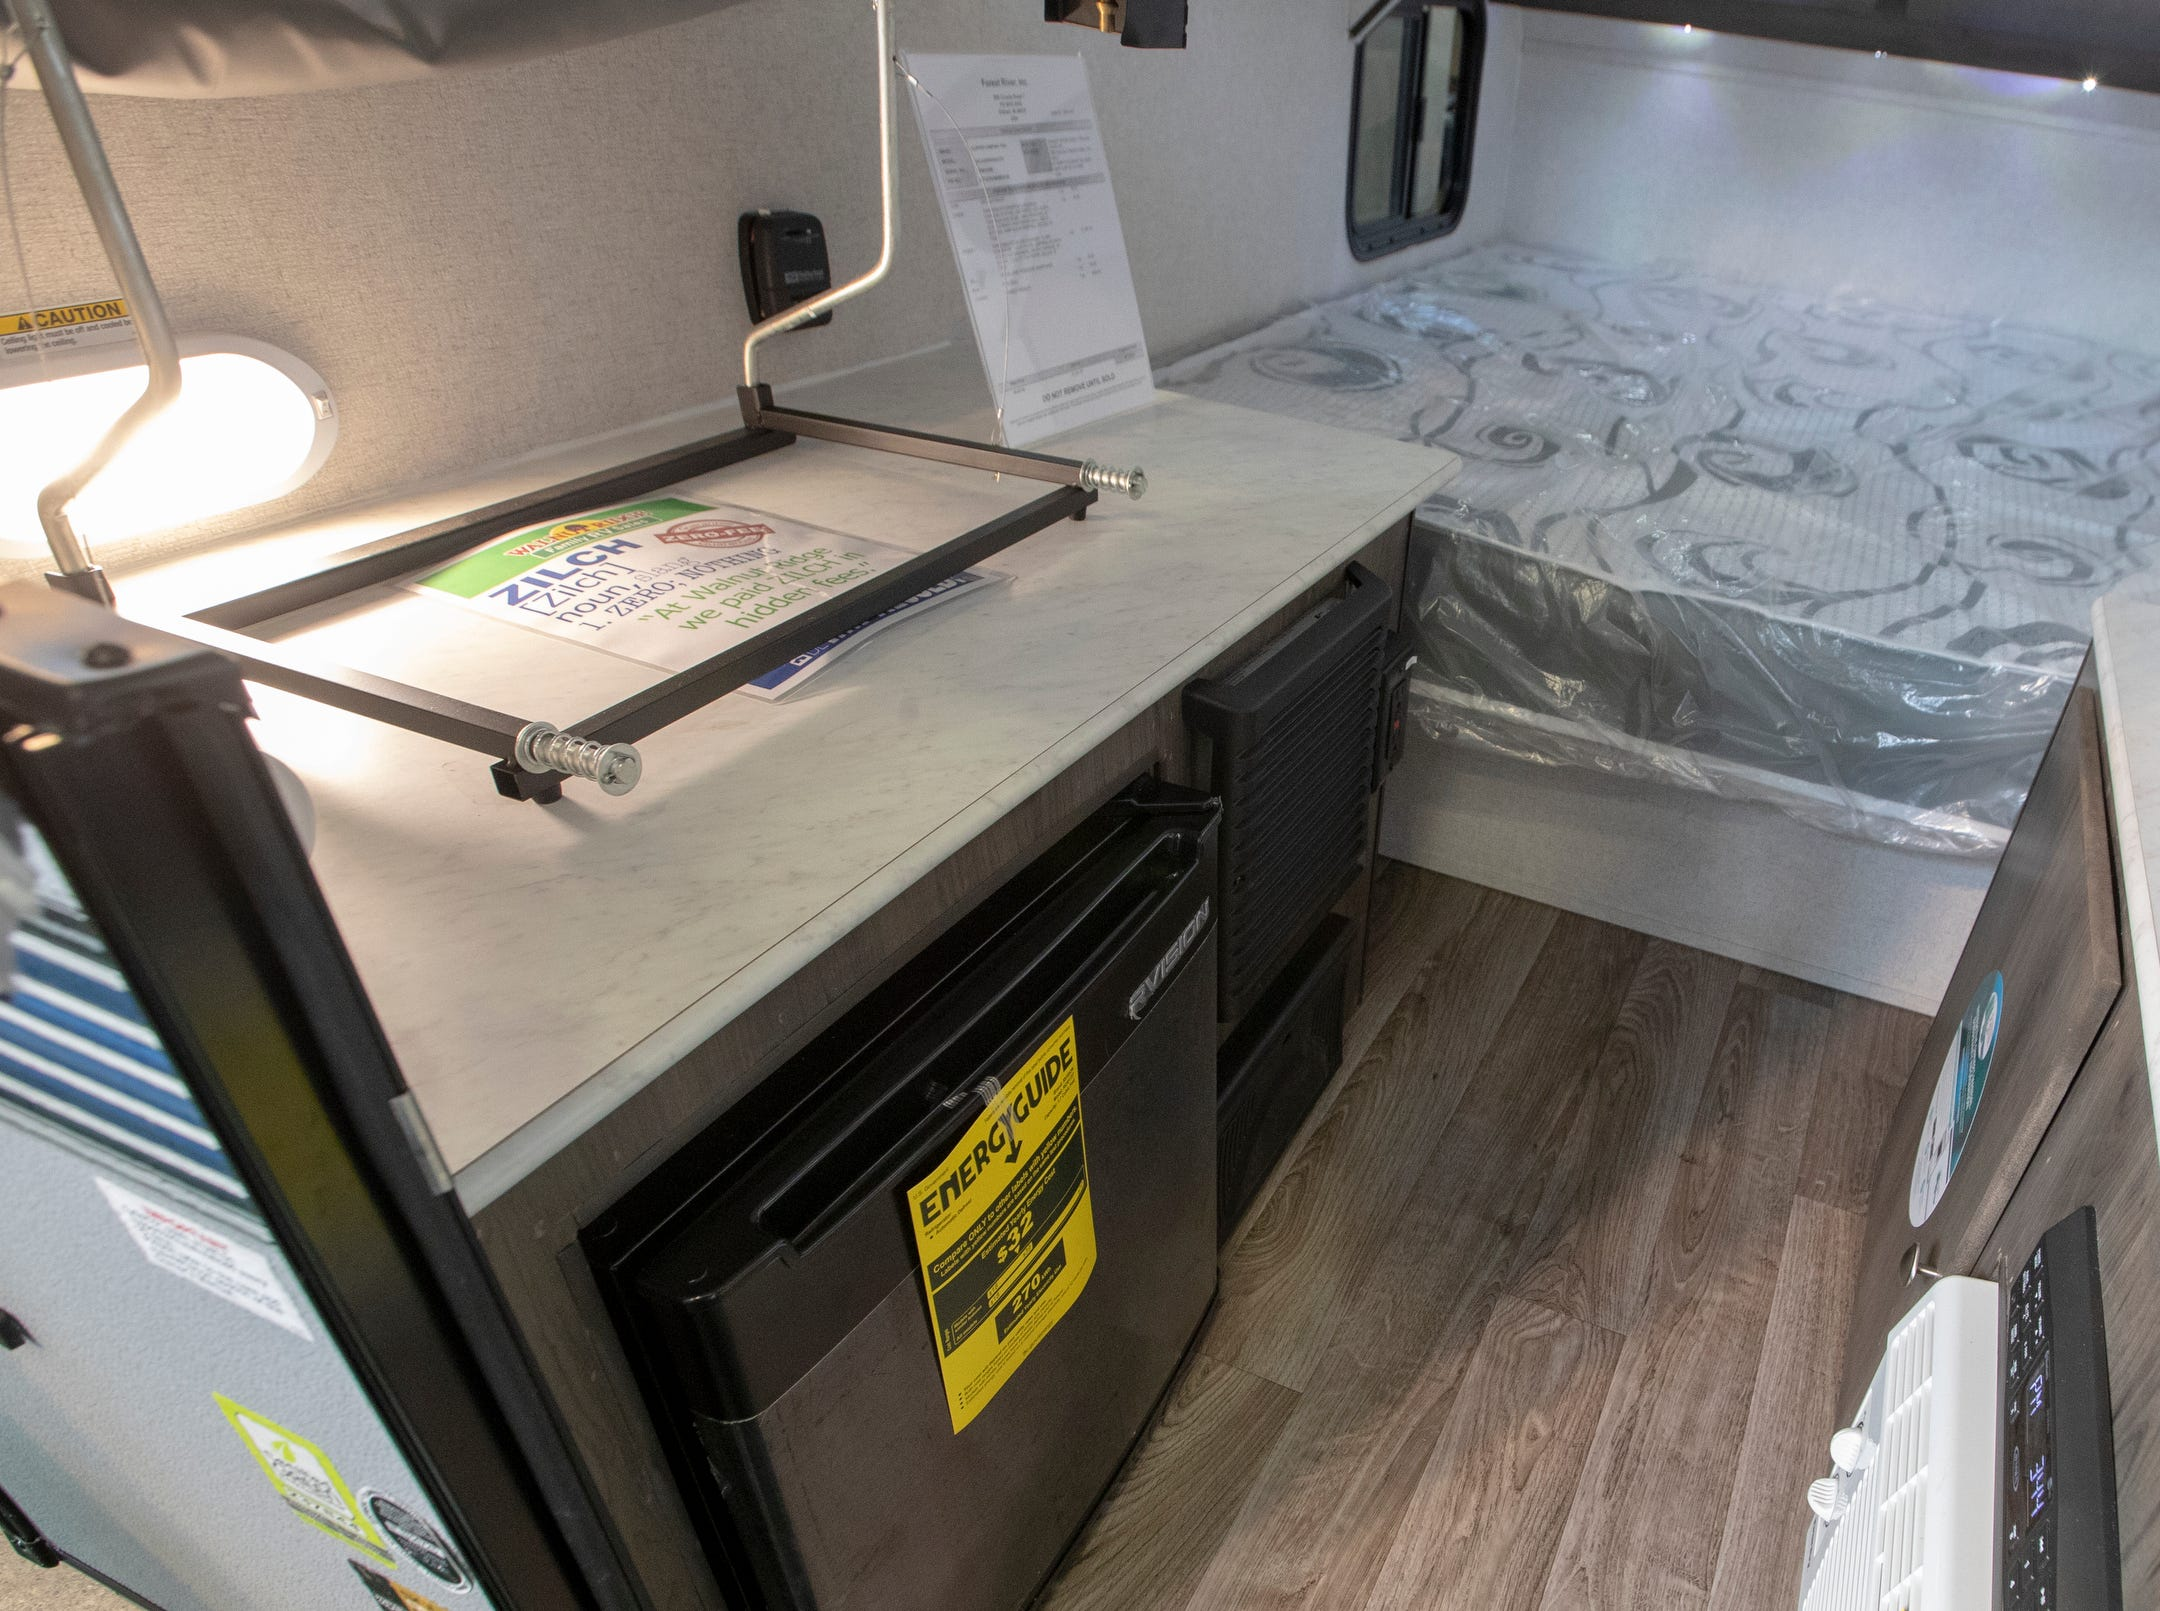 A 2019 Clipper Express 9.0TD, a unit that can be towed behind a small car and includes a stove, fridge, and sound system, at the Indy RV Expo, Indiana State Fairgrounds, Indianapolis, Sunday, January 6, 2019. The show runs through the 13th.